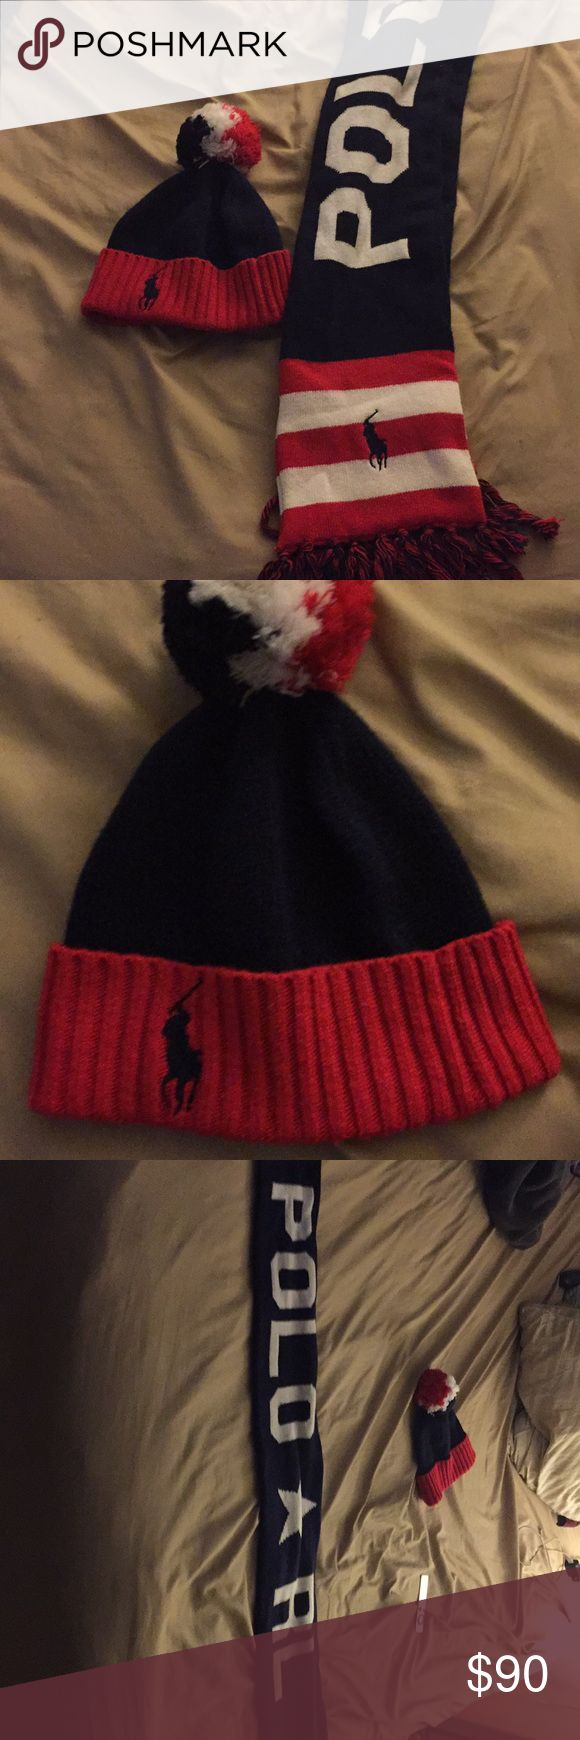 Polo Ralph Lauren hat and scarf set Up for sale is a brand new polo Ralph Lauren scarf and hat set. They have never been worn once. Retail value is around 130$. Perfect combo set. Brand new Polo by Ralph Lauren Accessories